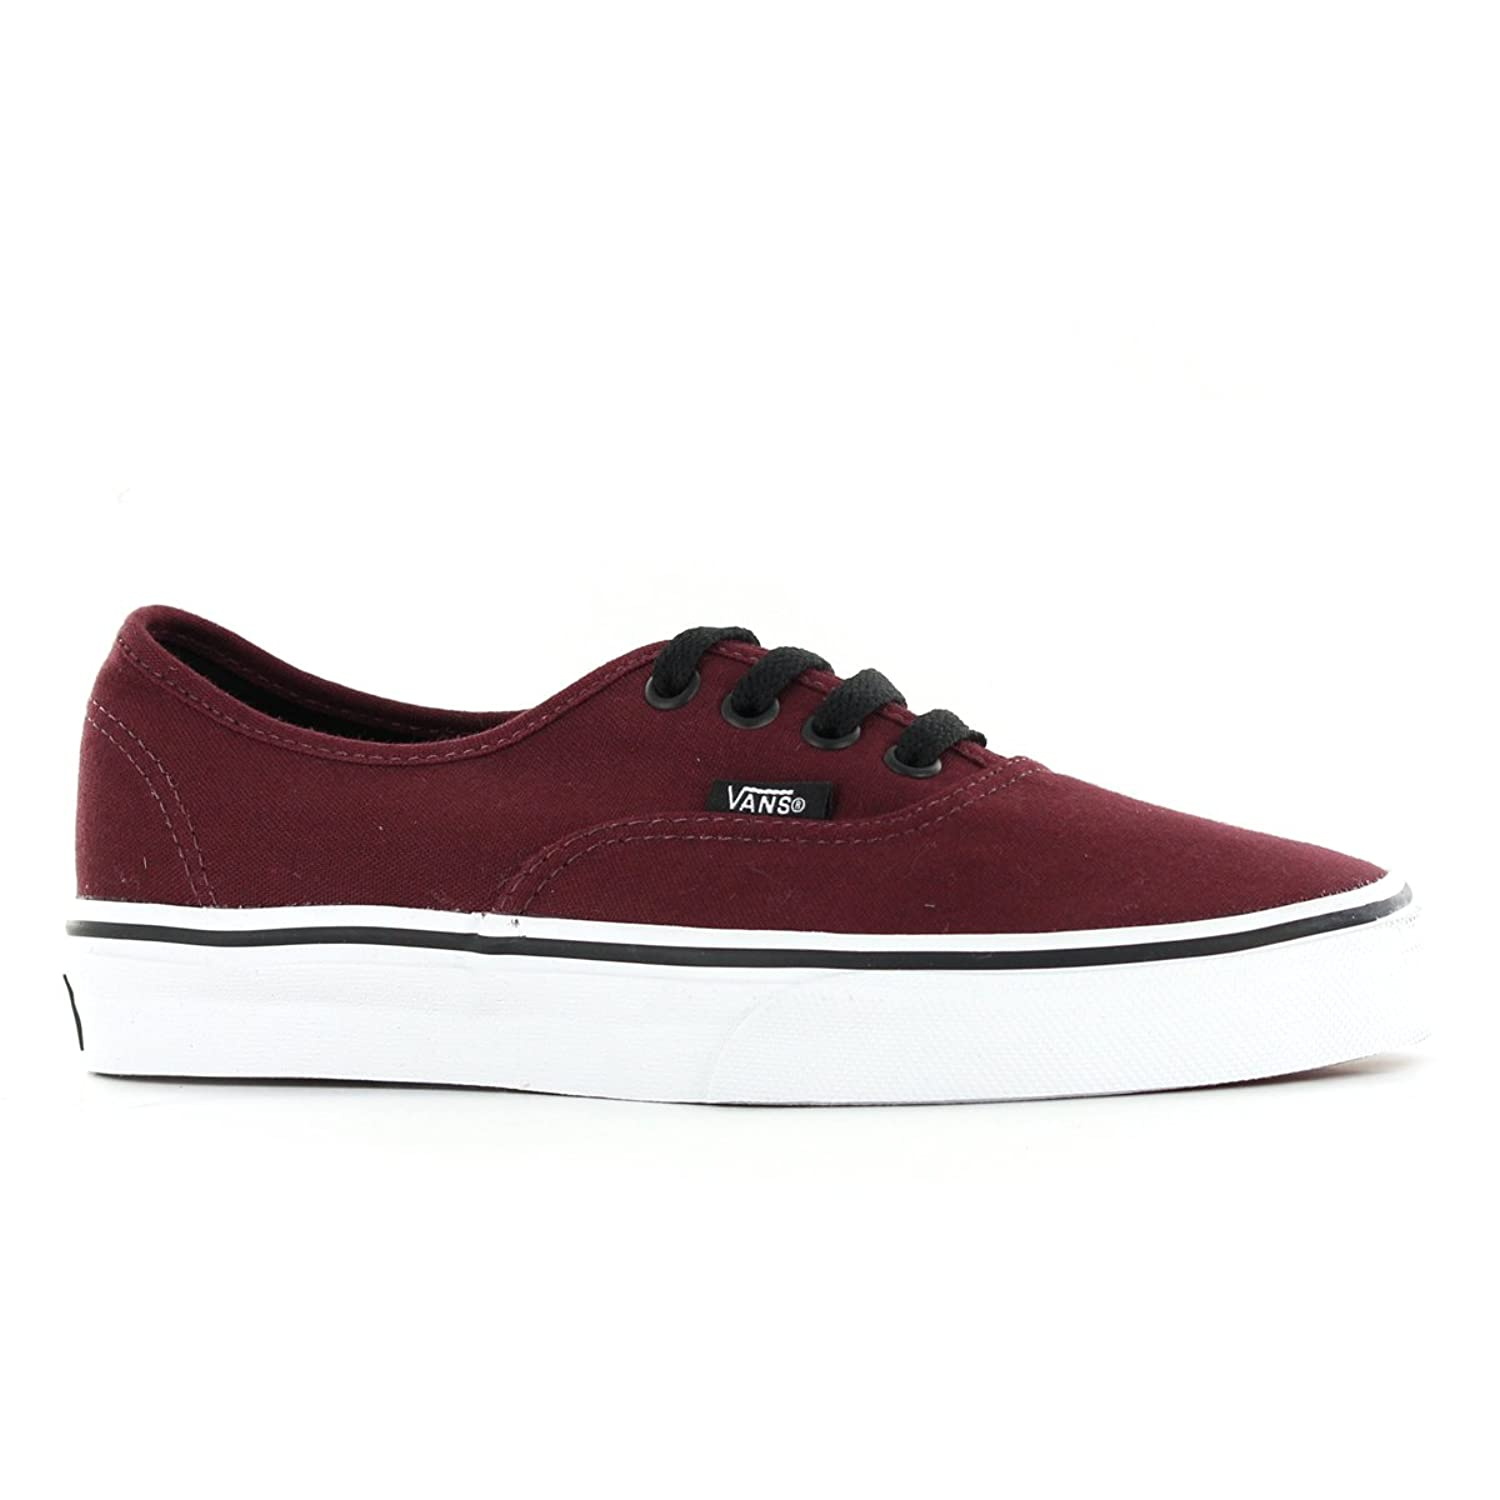 Vans Unisex Classic Authentic Canvas Sneakers